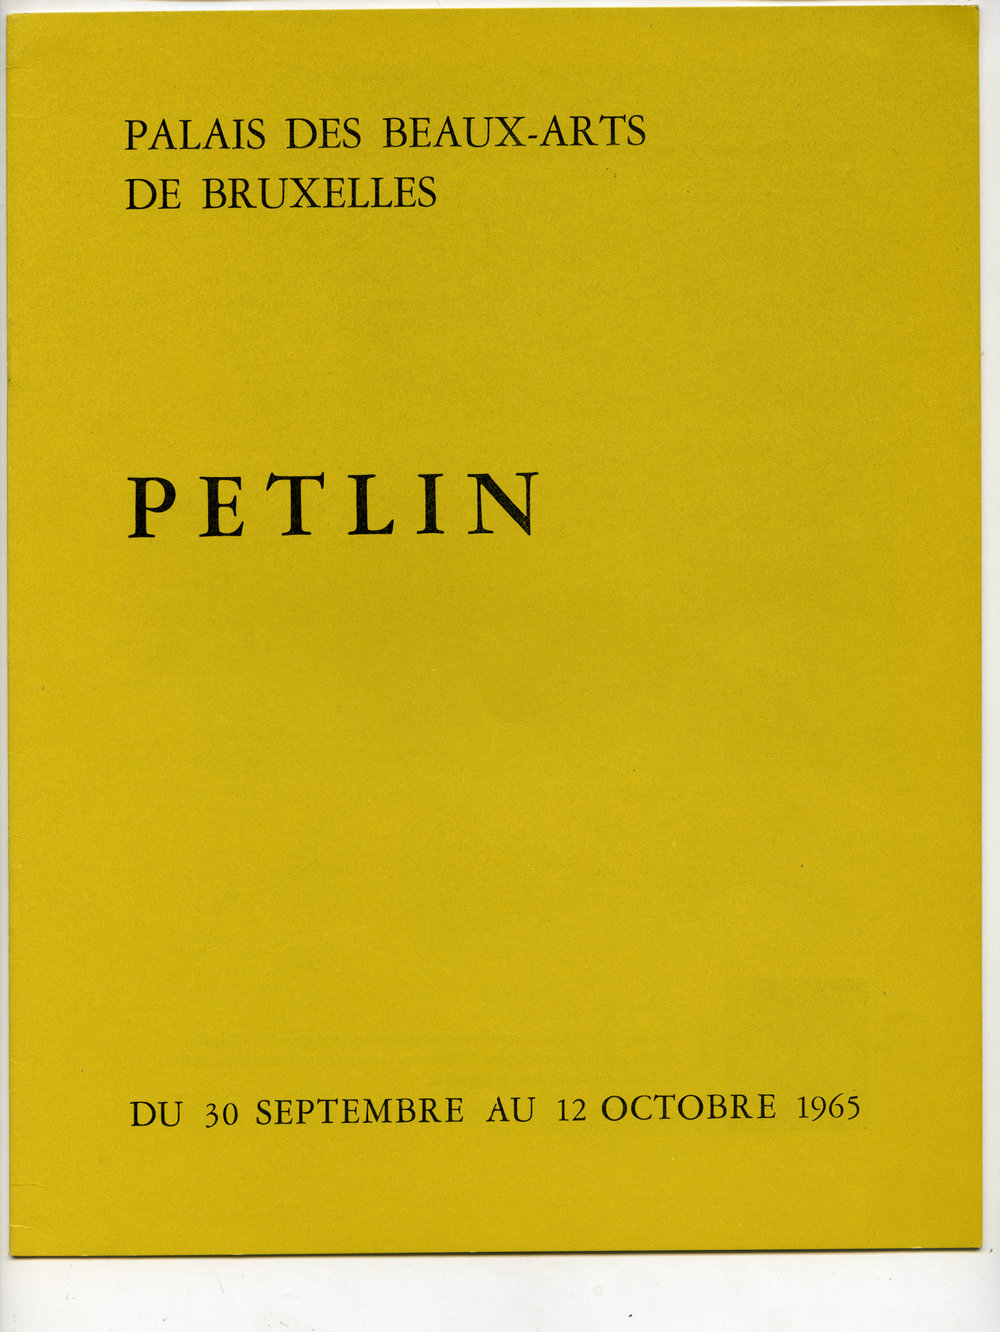 Exhibition at Palais ds Beaux Arts, Bruxelles (1965)